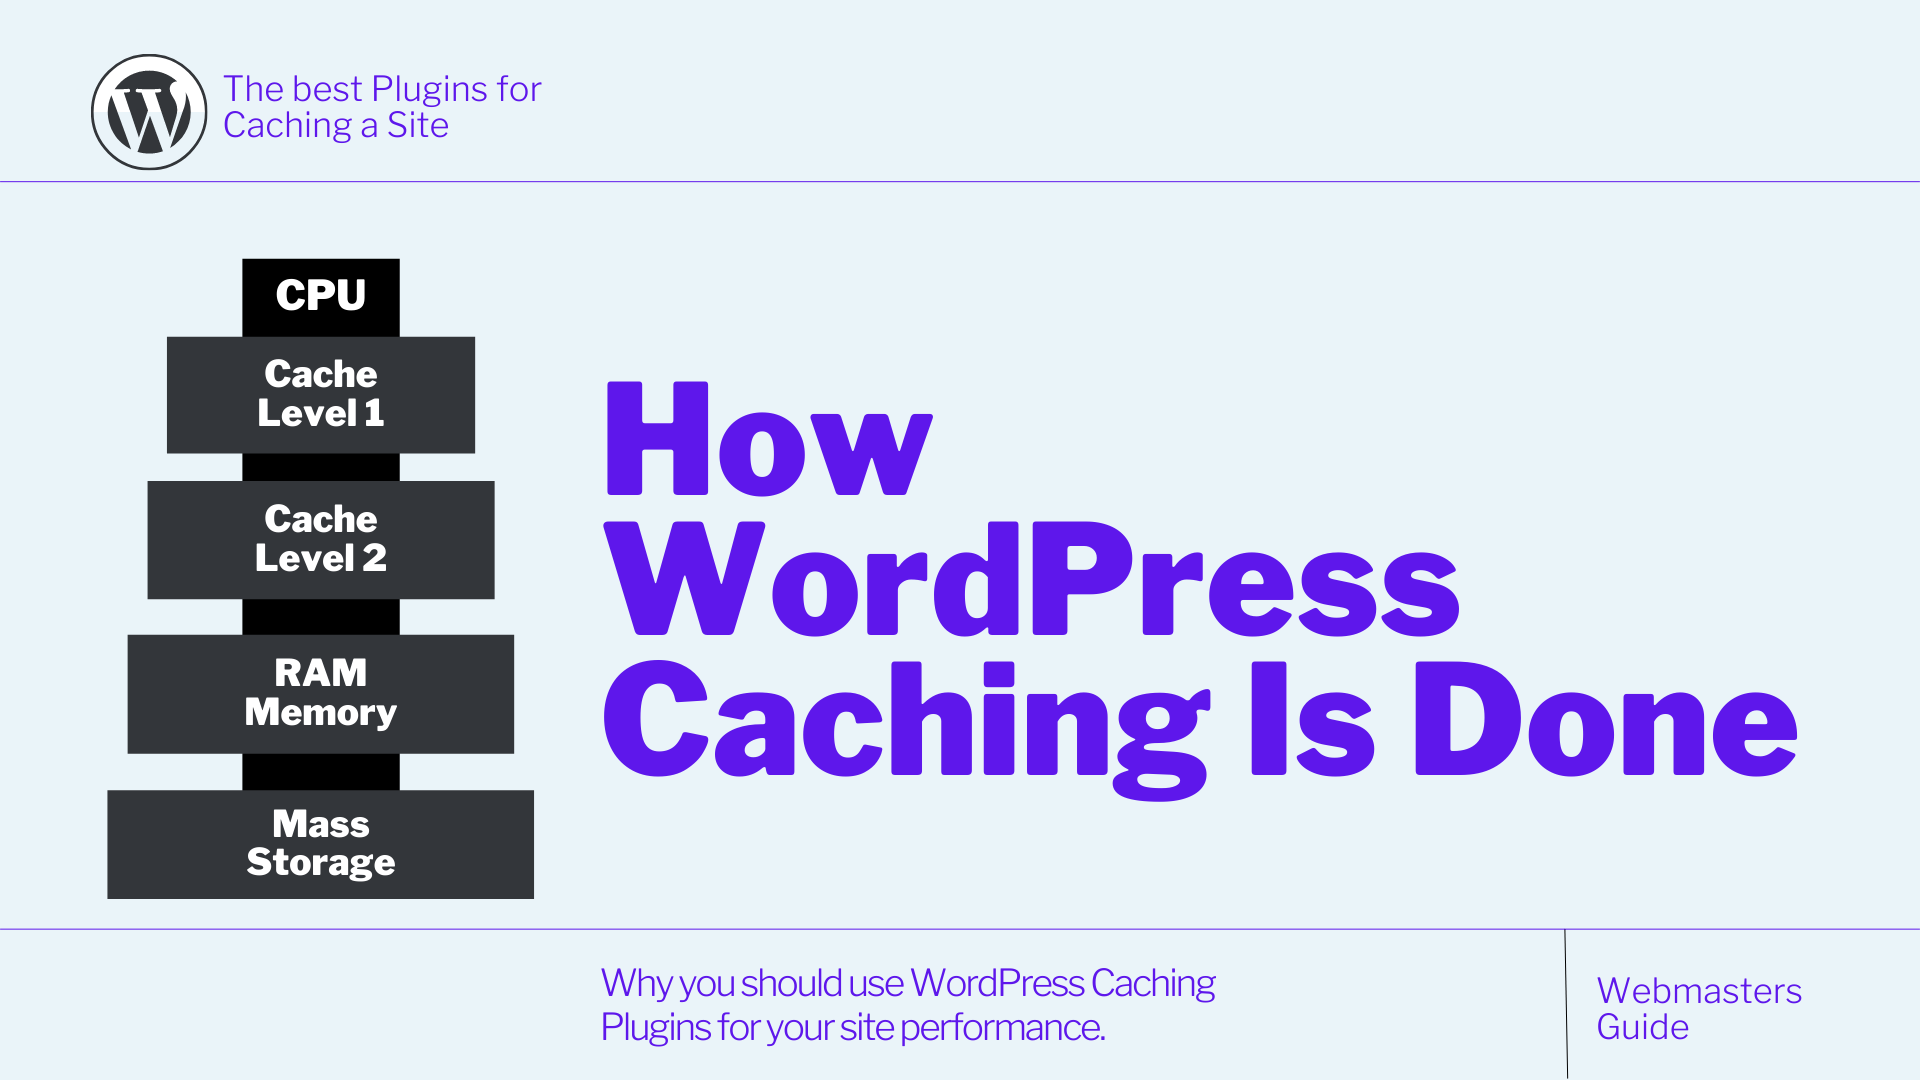 How is WordPress Caching done?